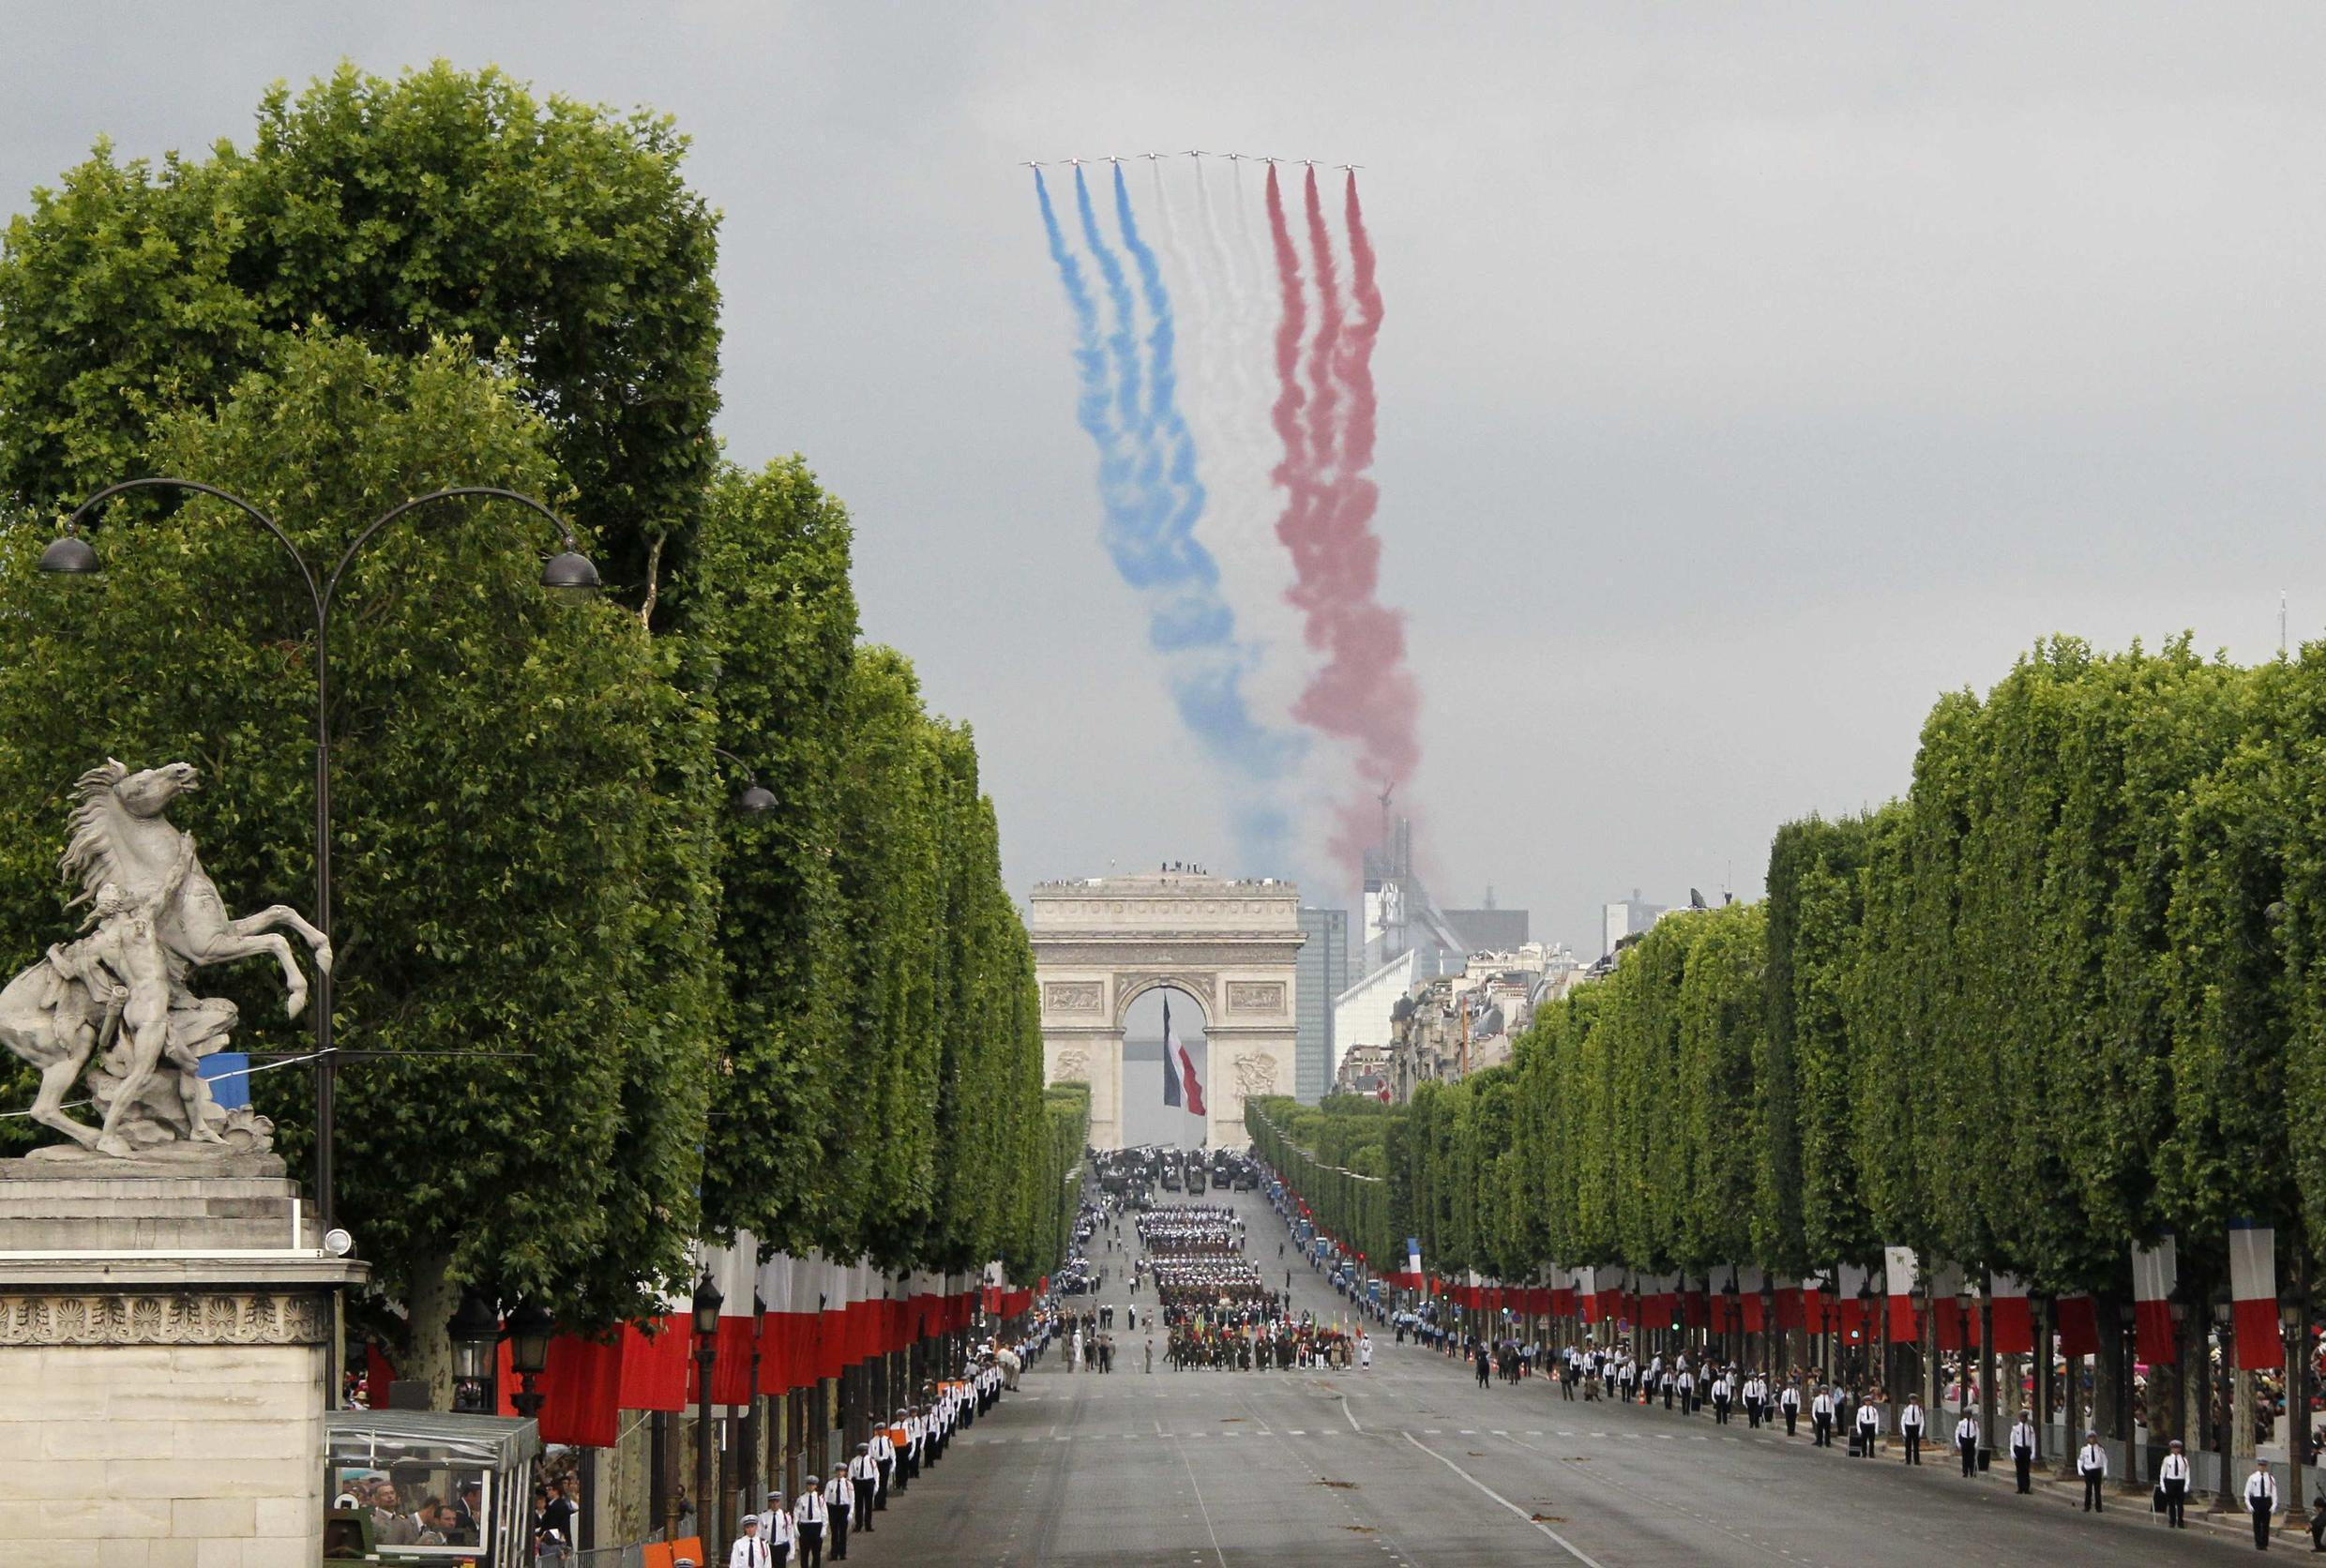 The French air force flies over the Bastille Day military parade, which featured soldiers from 13 African nations.